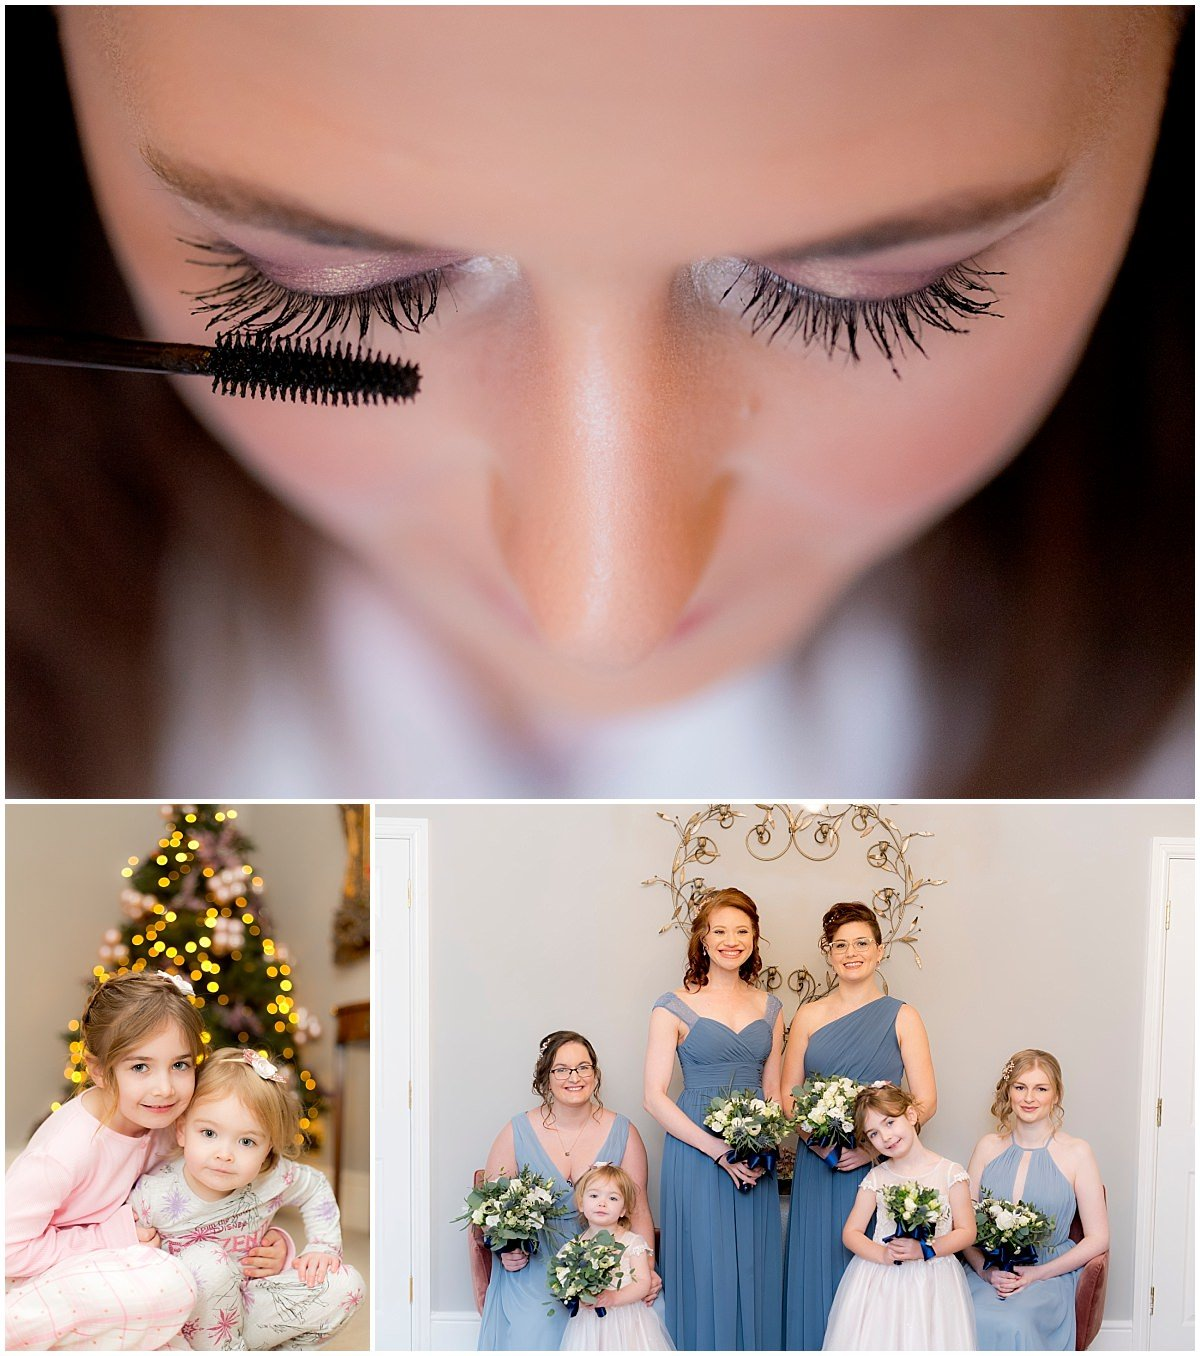 Wedding make up at Blackbrook House